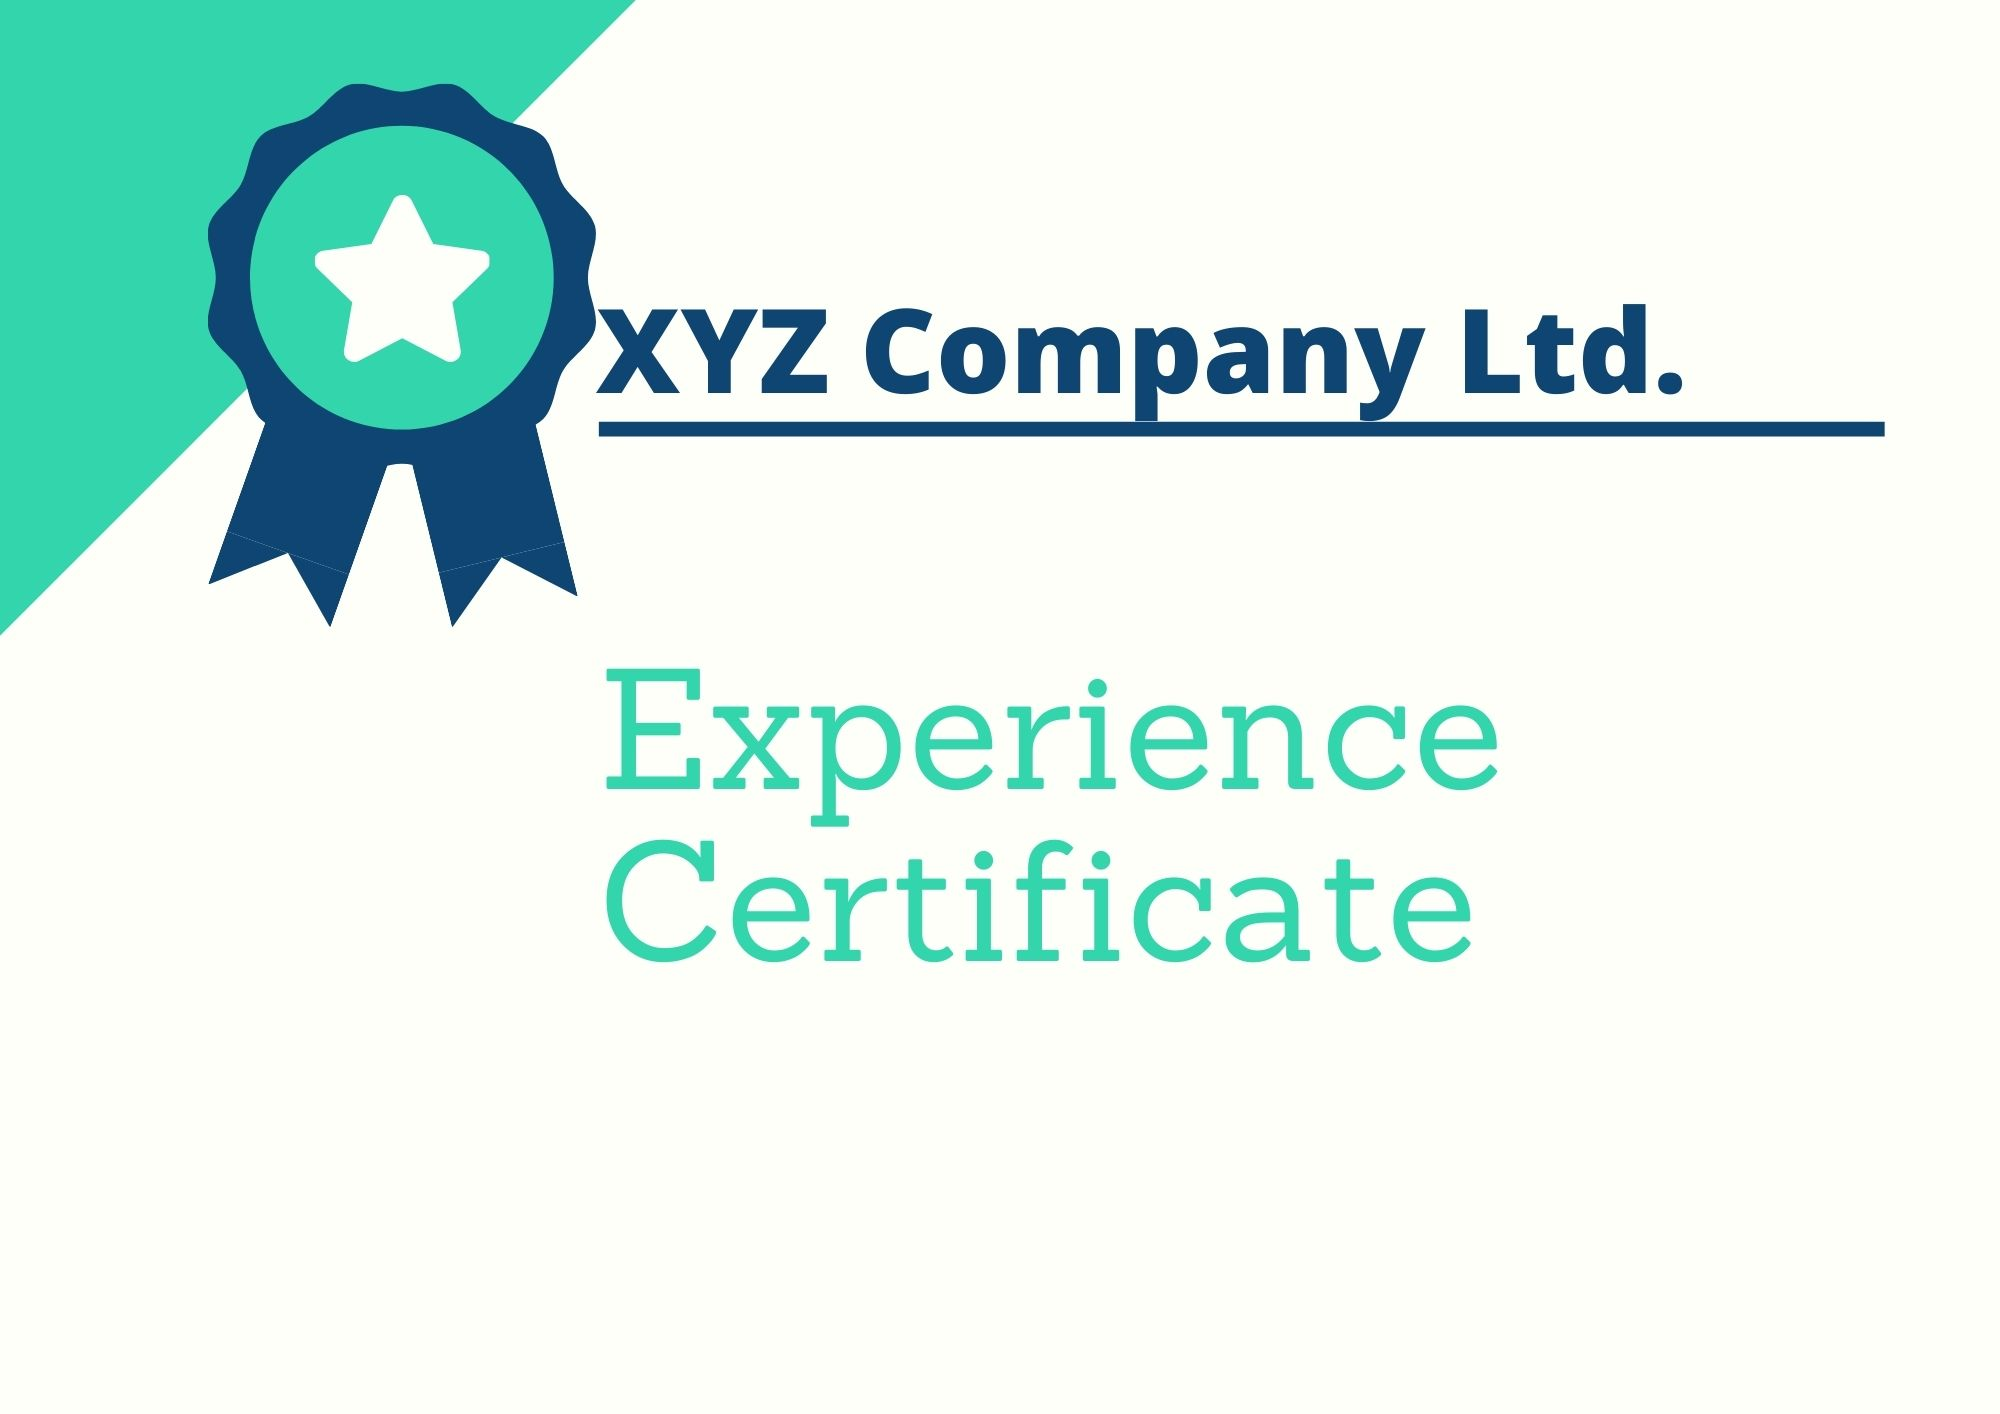 Experience Certificate Format   Download Format & Samples   Word, PDF